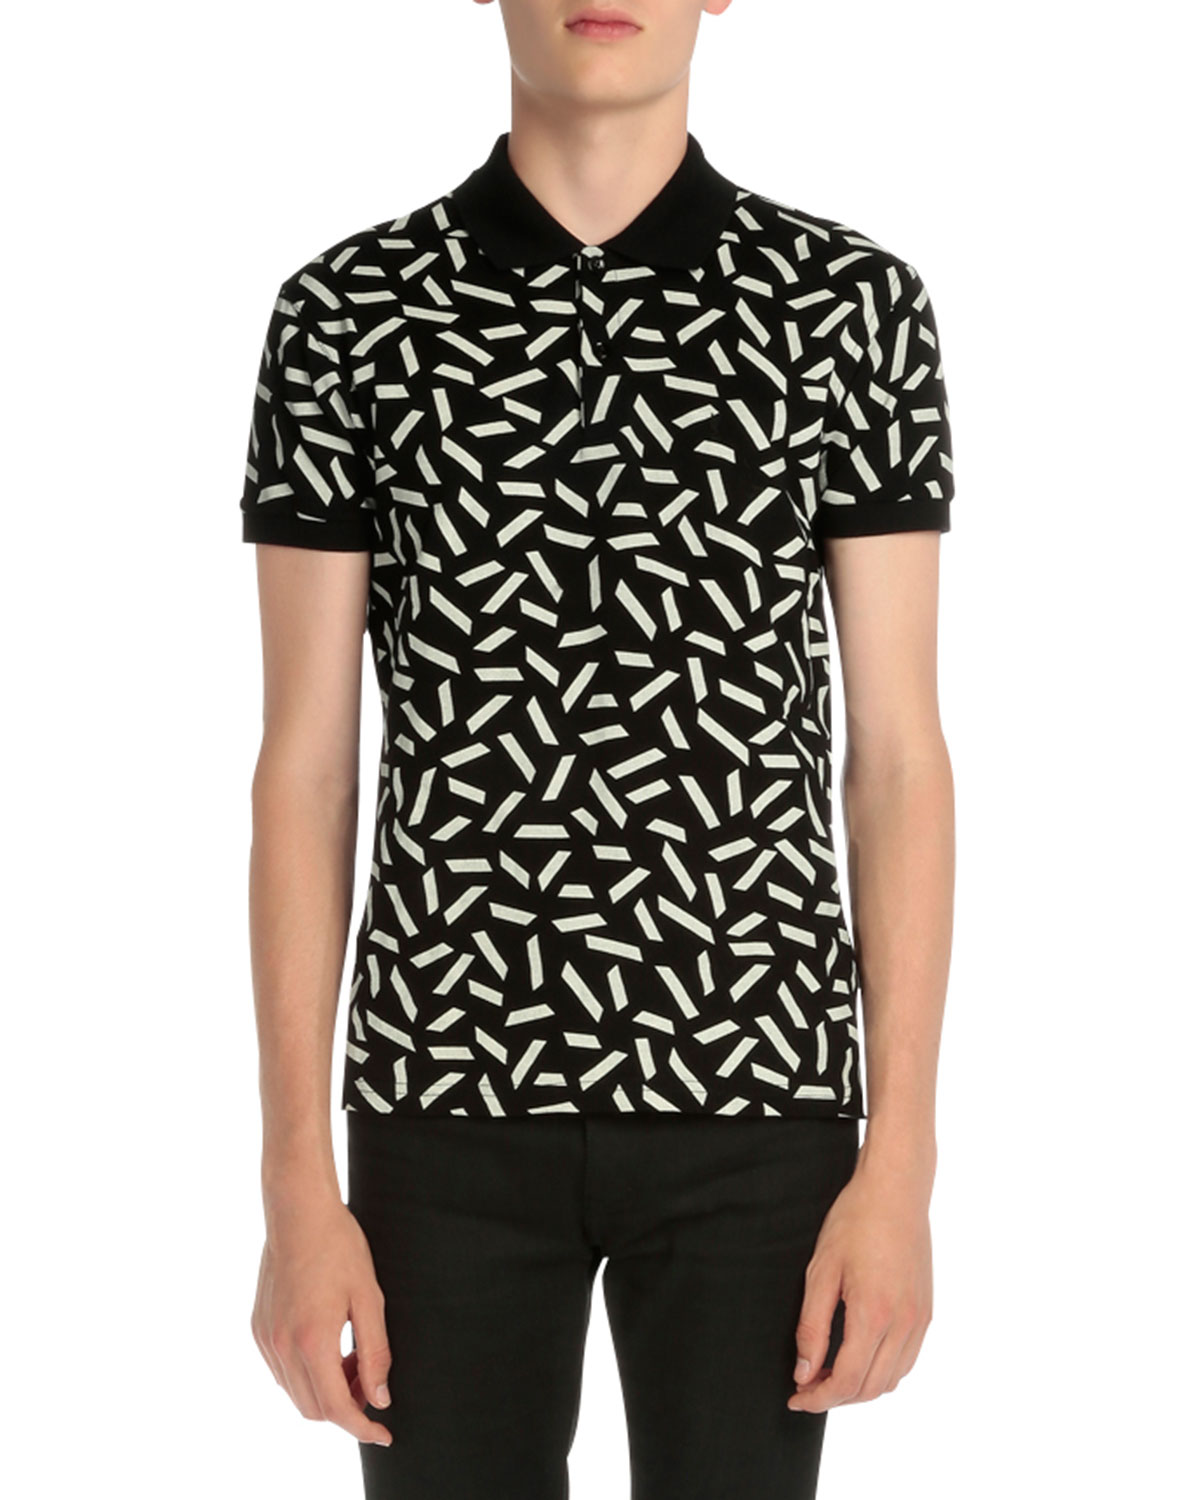 Dash-Print Short-Sleeve Polo Shirt, Black/White